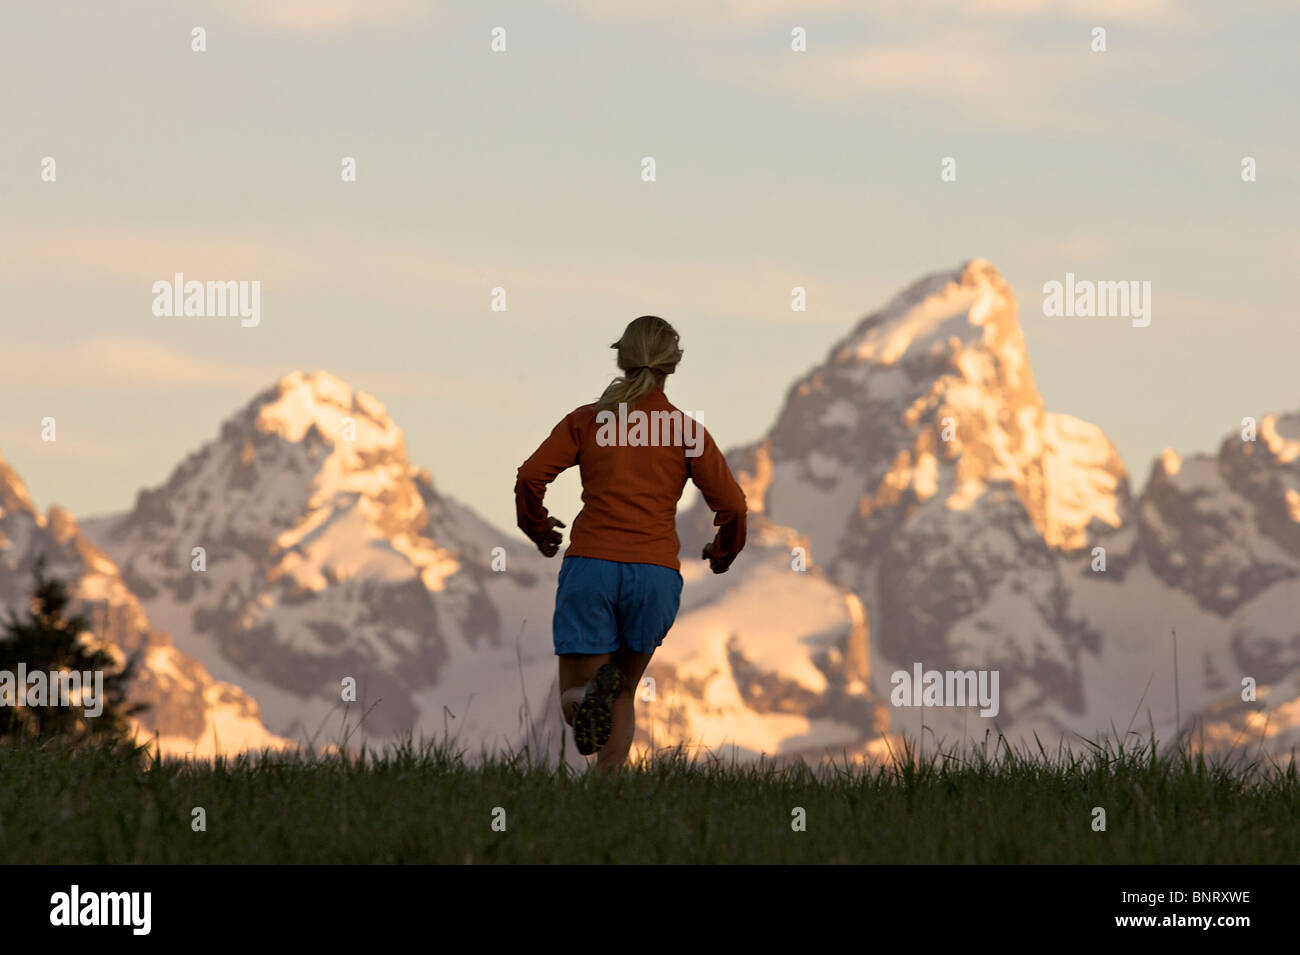 A woman runs on a trail in Wyoming. - Stock Image